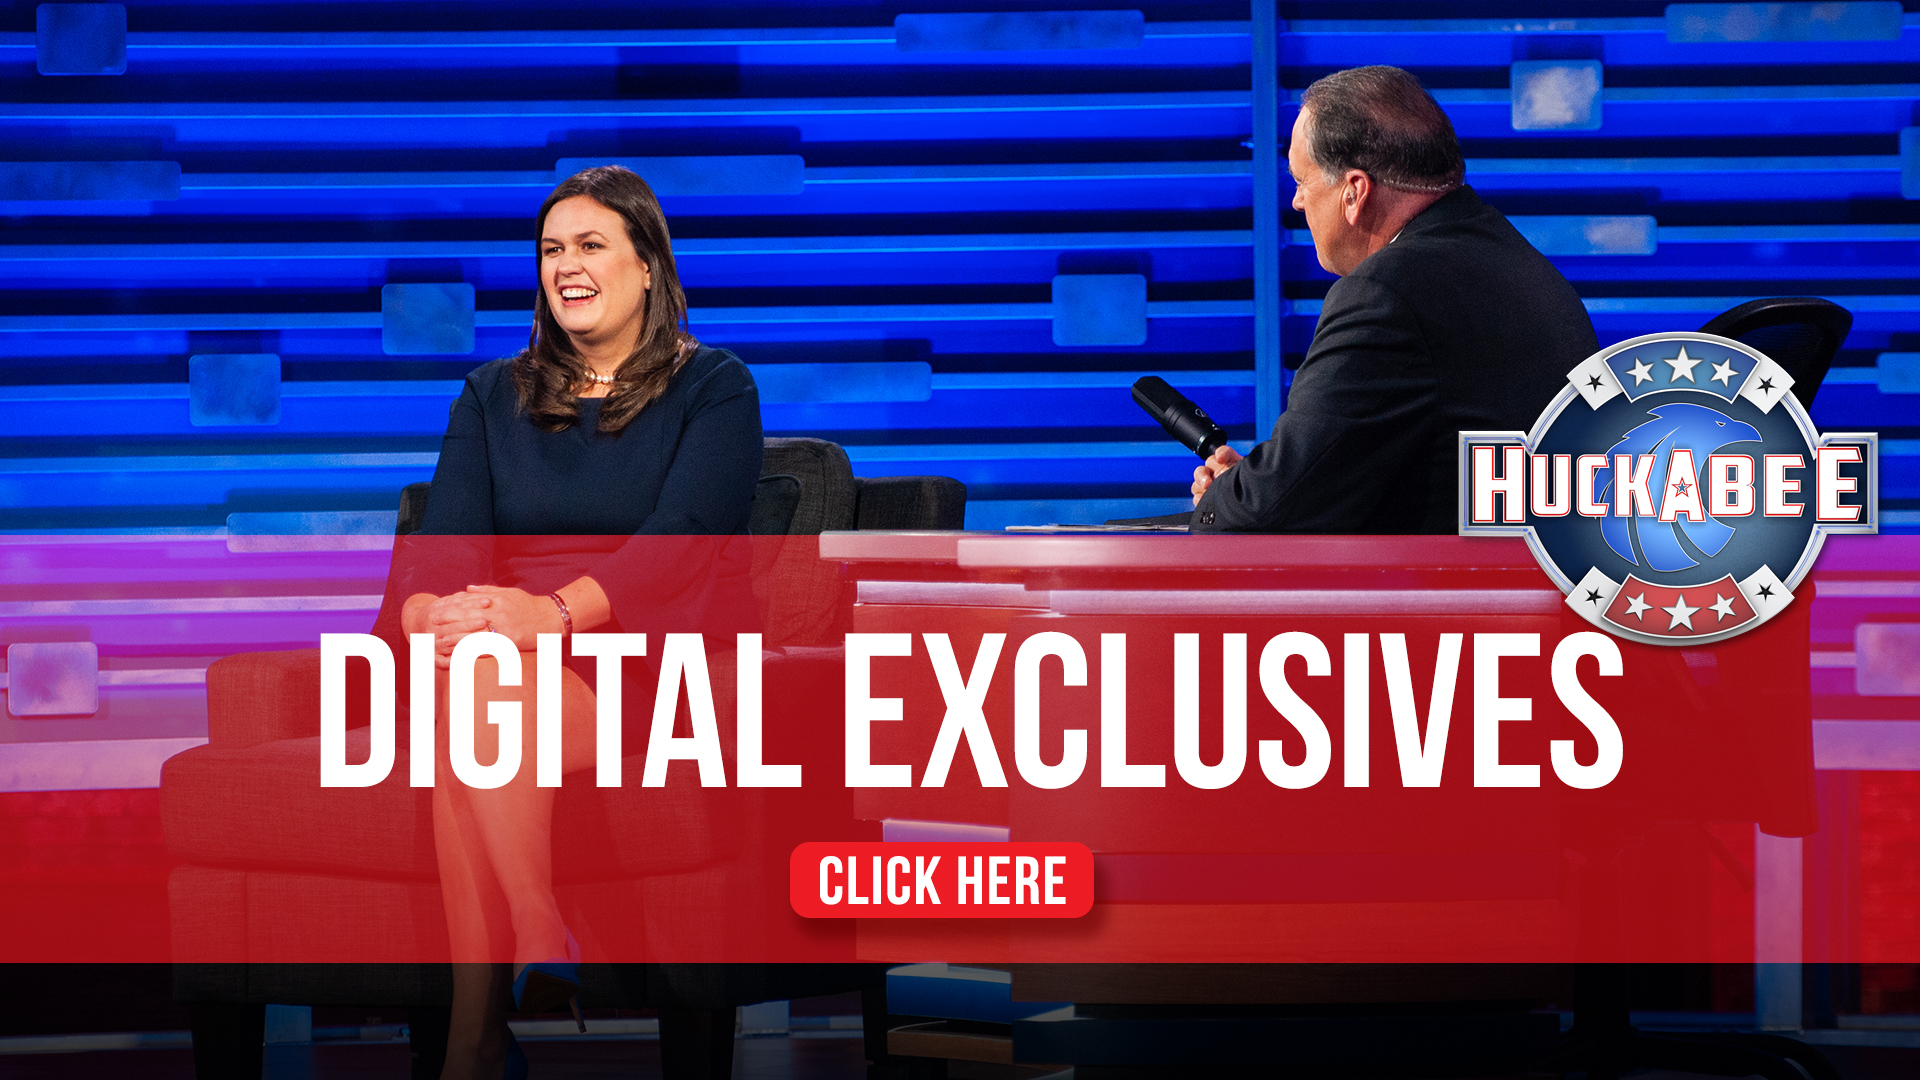 Mike Huckabee Digital Exclusives on TBN